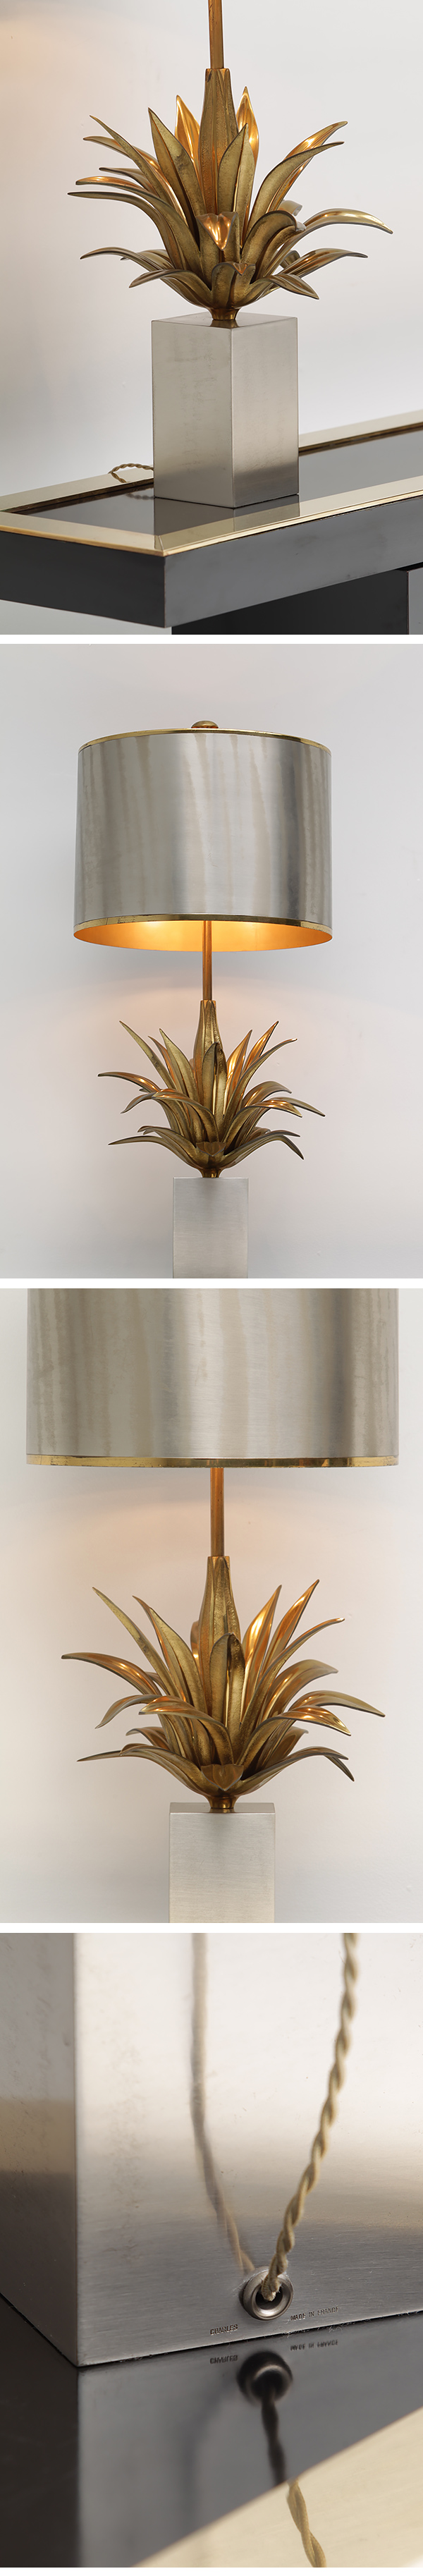 Table lamp, signed, Maison Charles, Paris, France